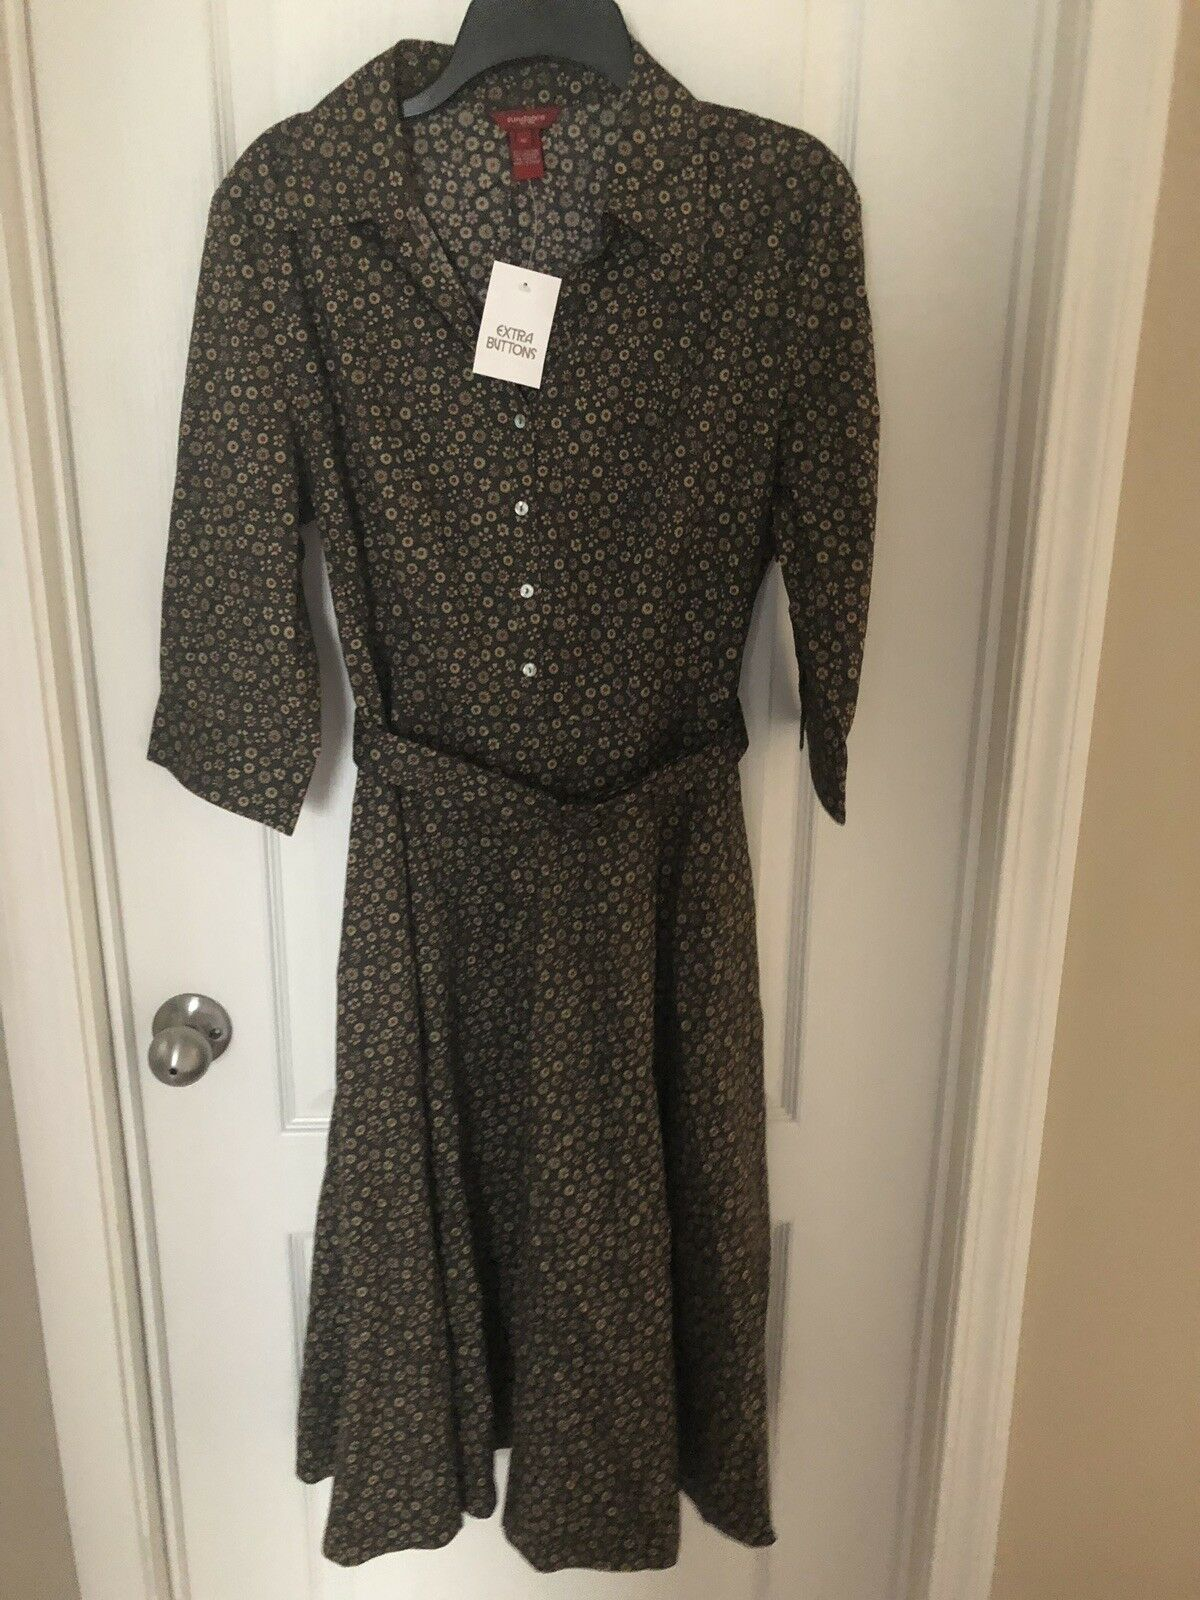 SUNDANCE NWT Floral Dress Button Down Belted Gorgeous Cranberry Greens Floral 16